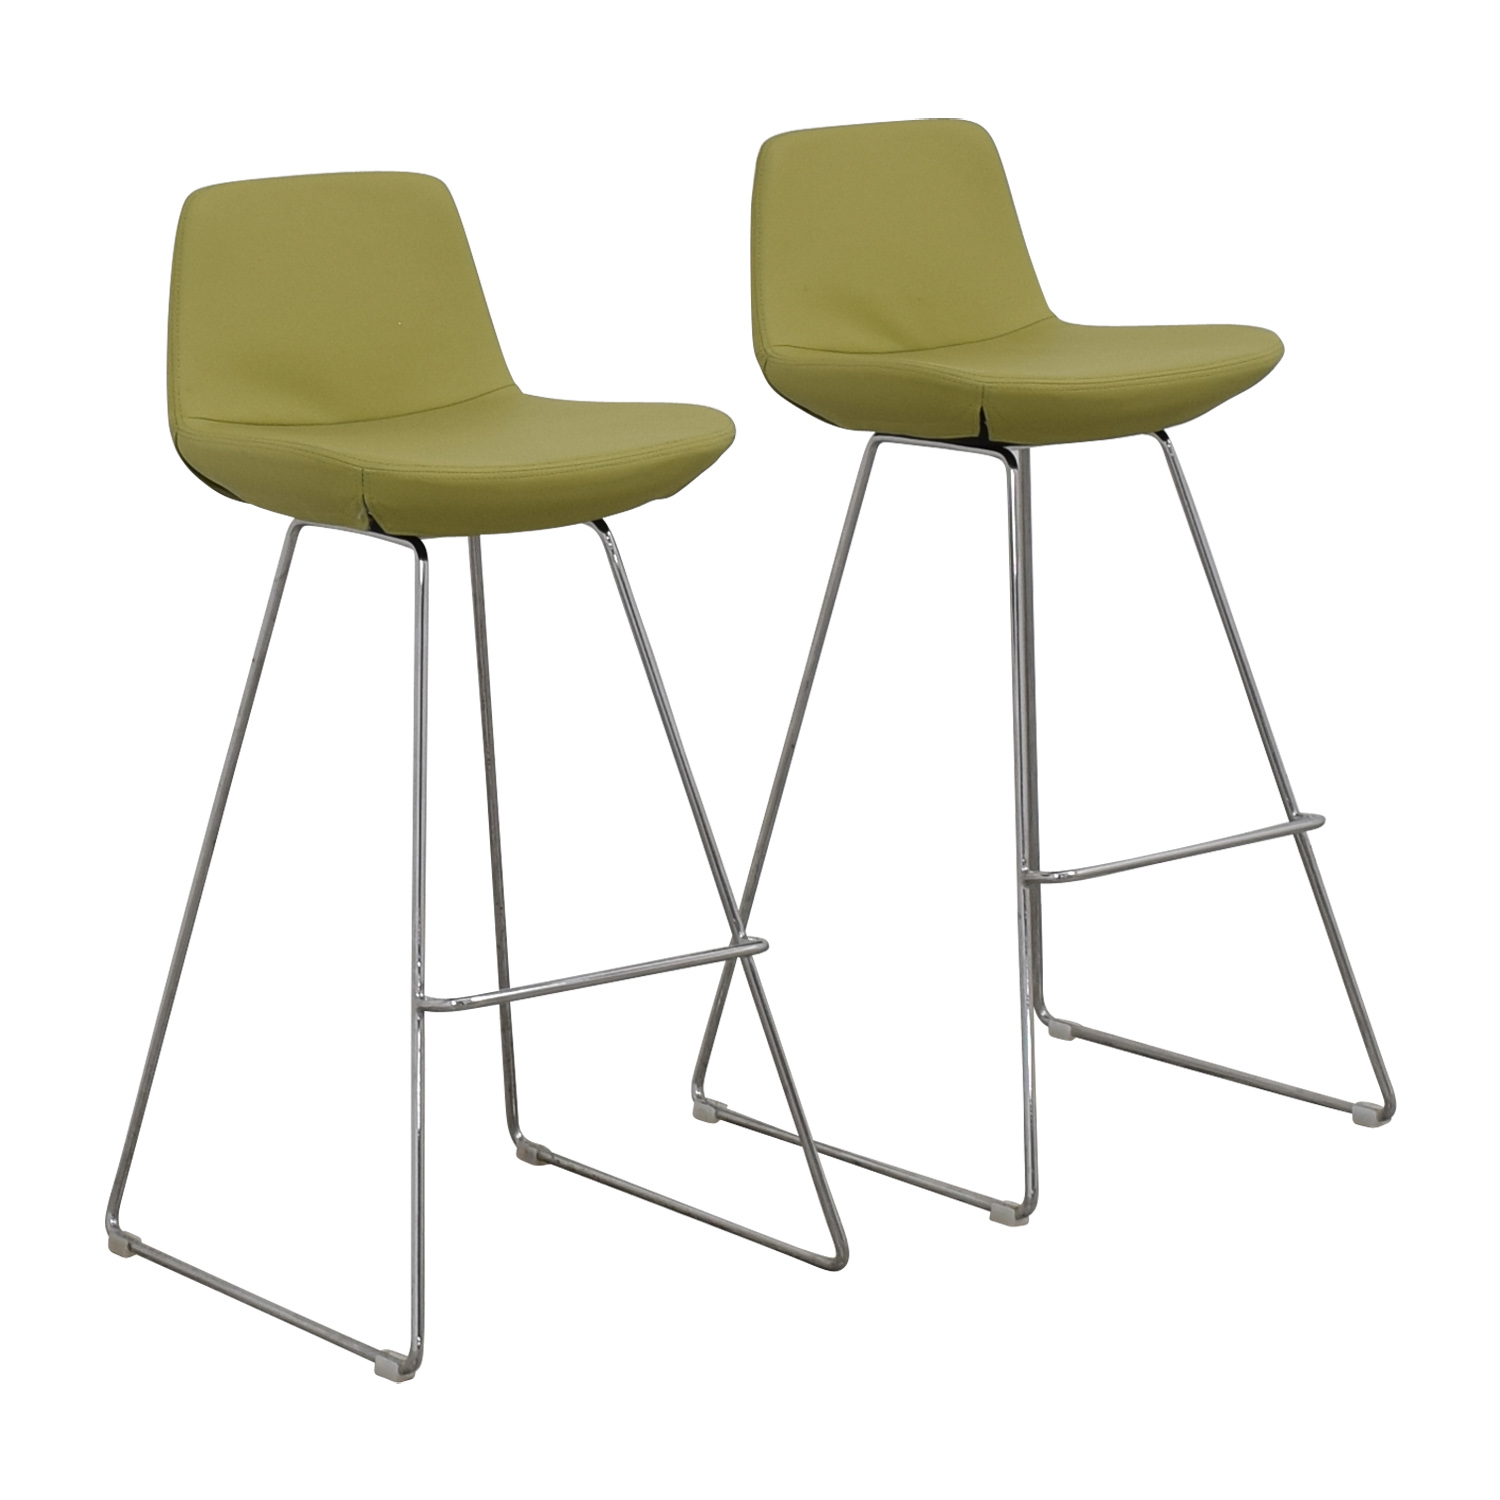 Design Within Reach Design Within Reach Lime Leather Bar Stools nj